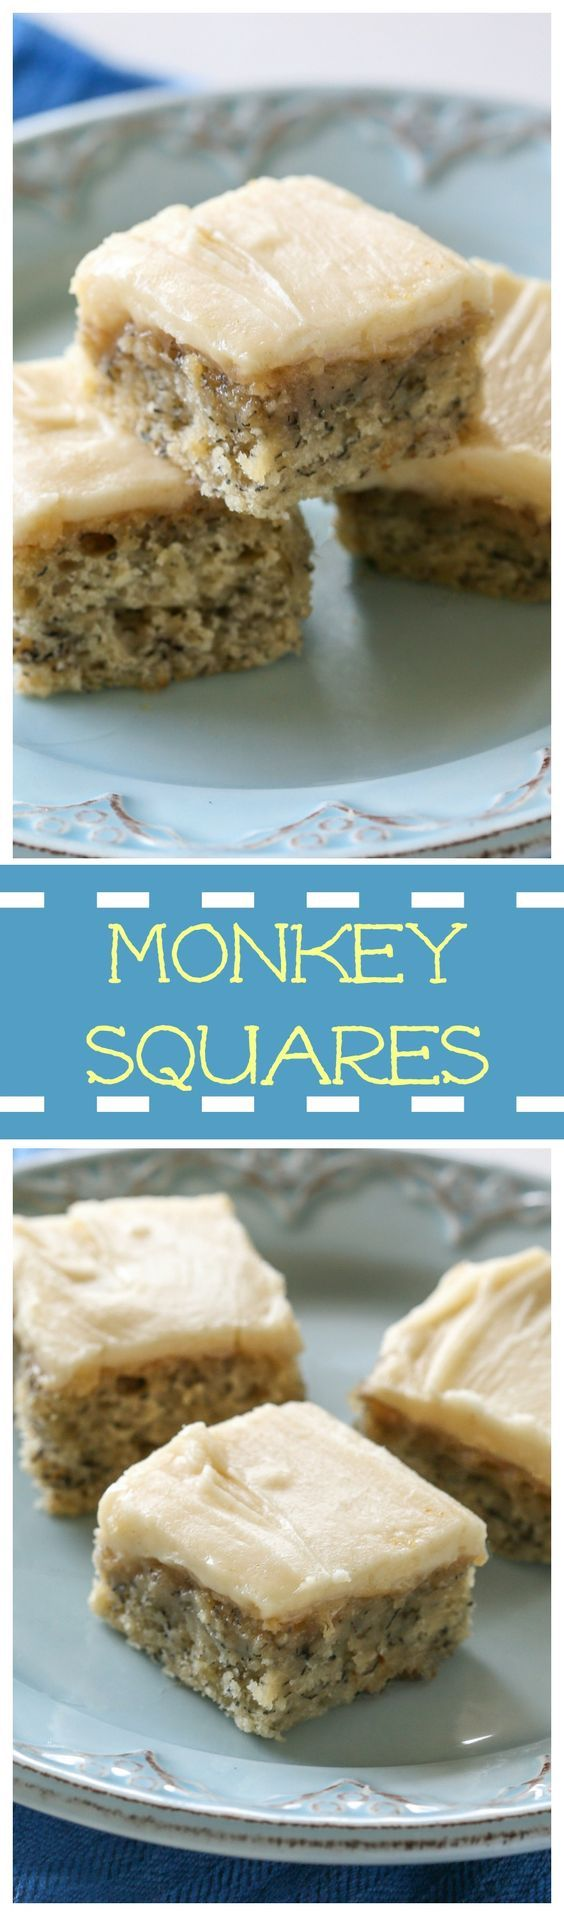 Monkey Squares - a moist banana bread bar with a browned butter frosting!